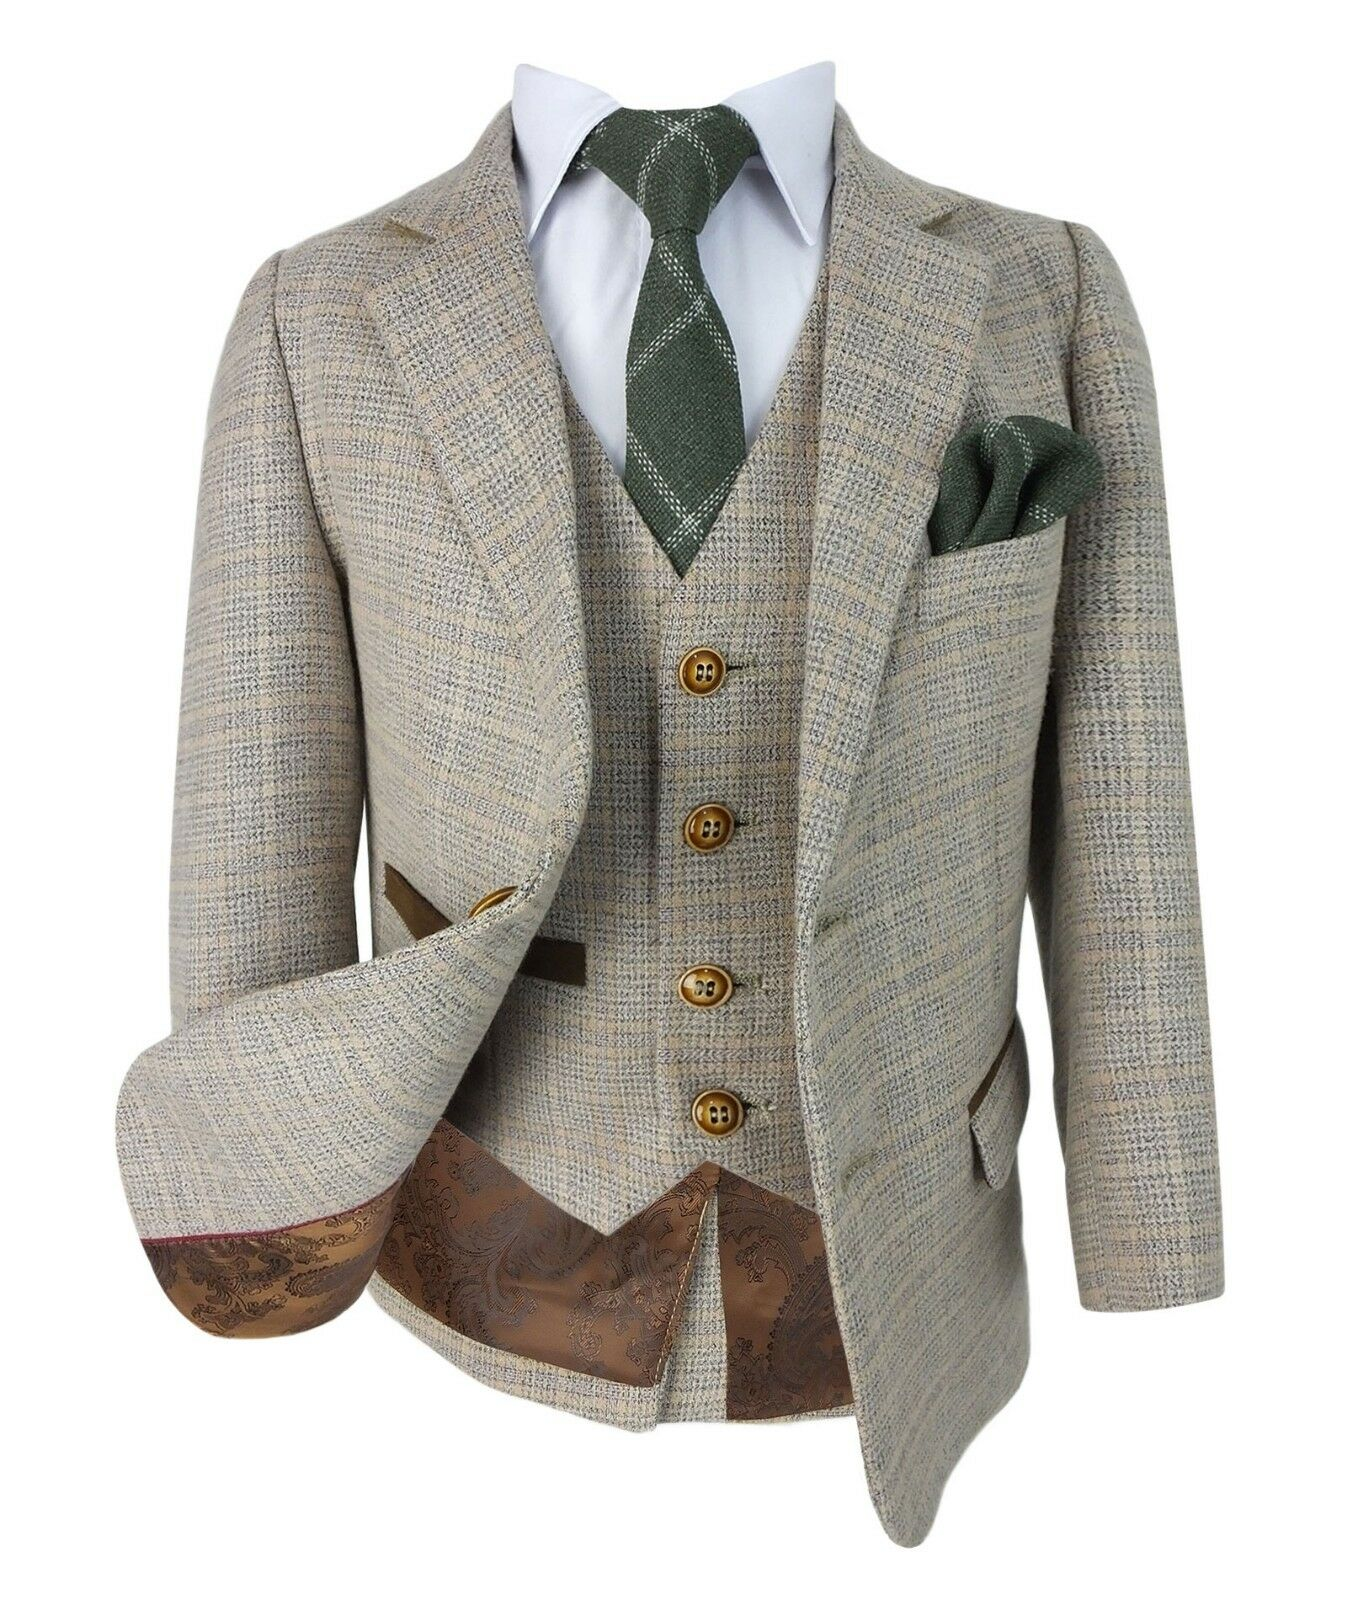 Kids Herringbone Tweed Suit Vintage Style Page Boys Prom Wedding Check Suits